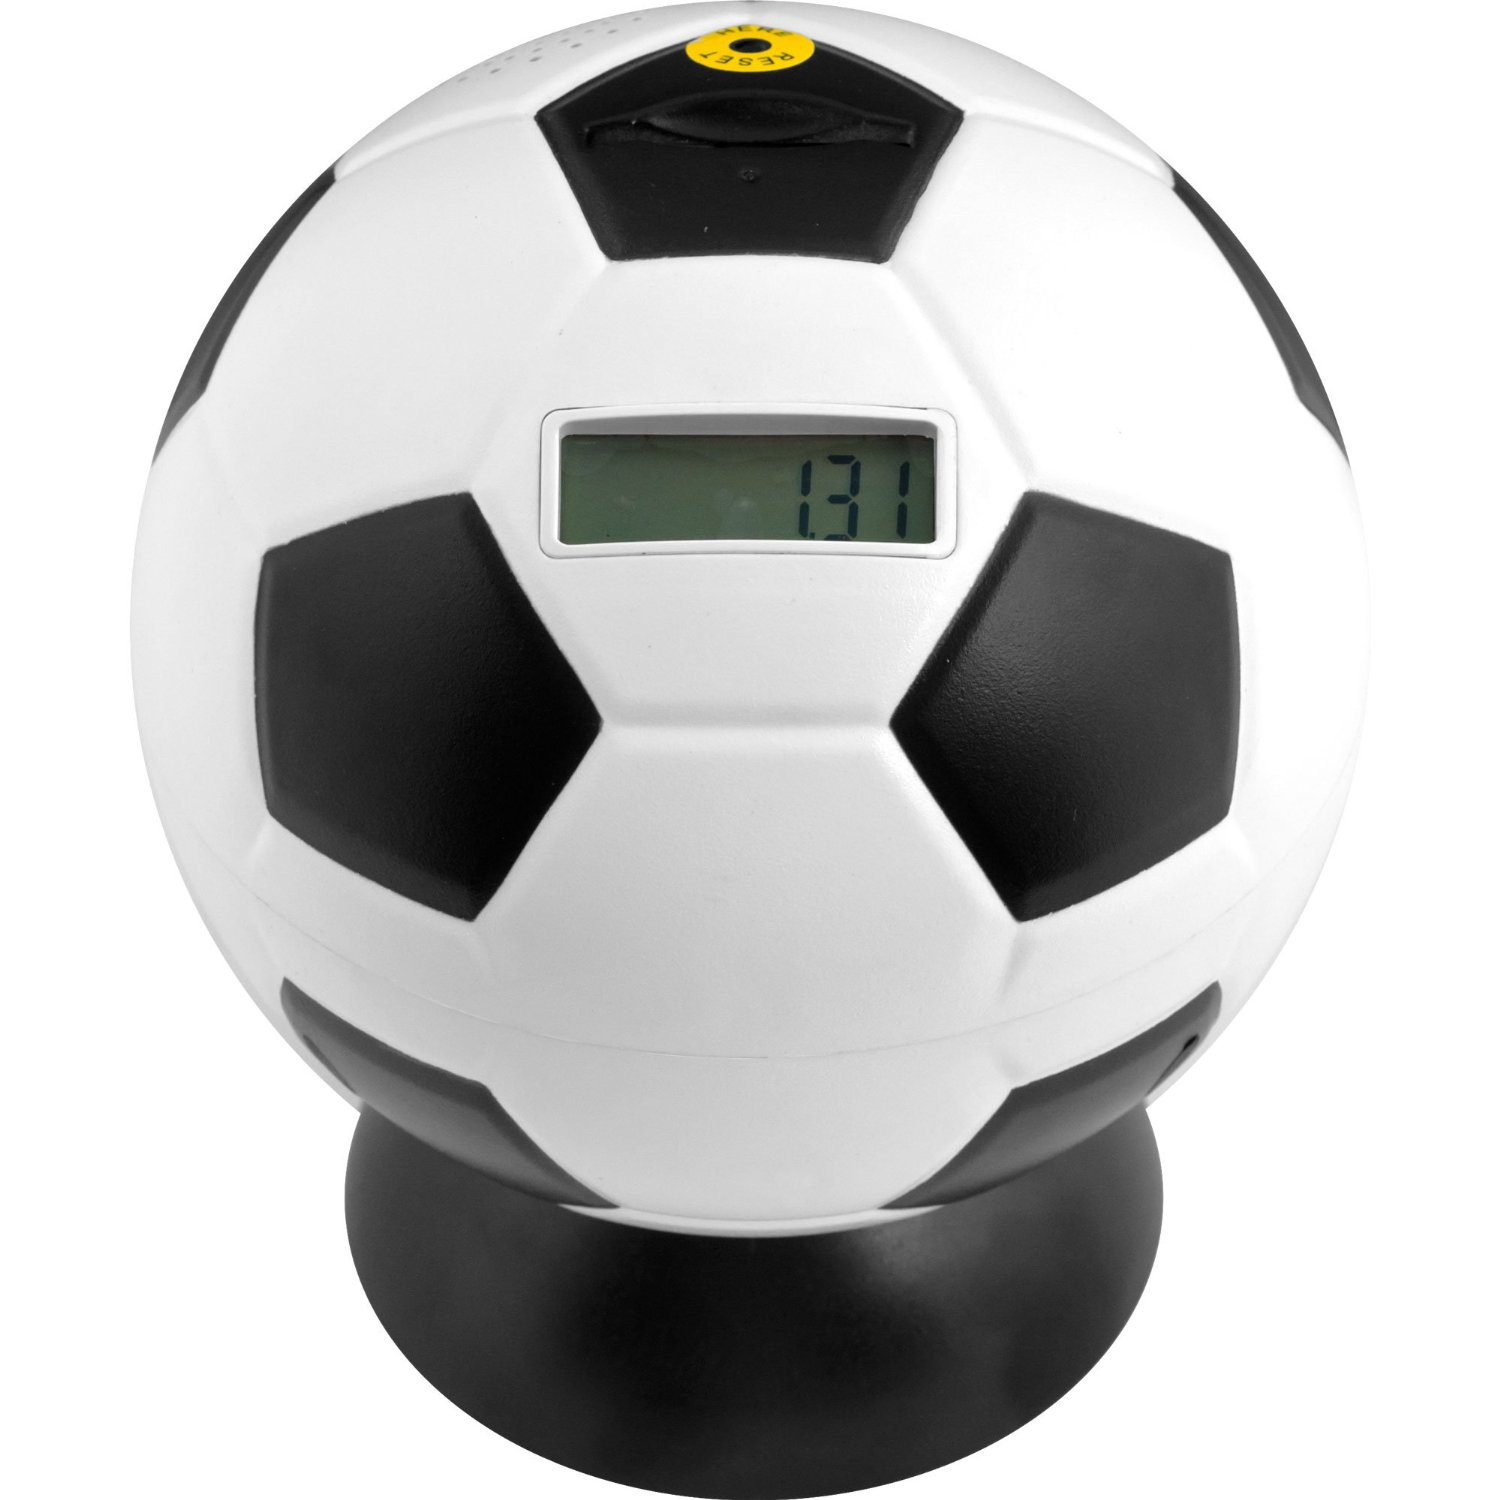 Soccer ball digital coin counting bank only reg - Coin bank that counts money ...